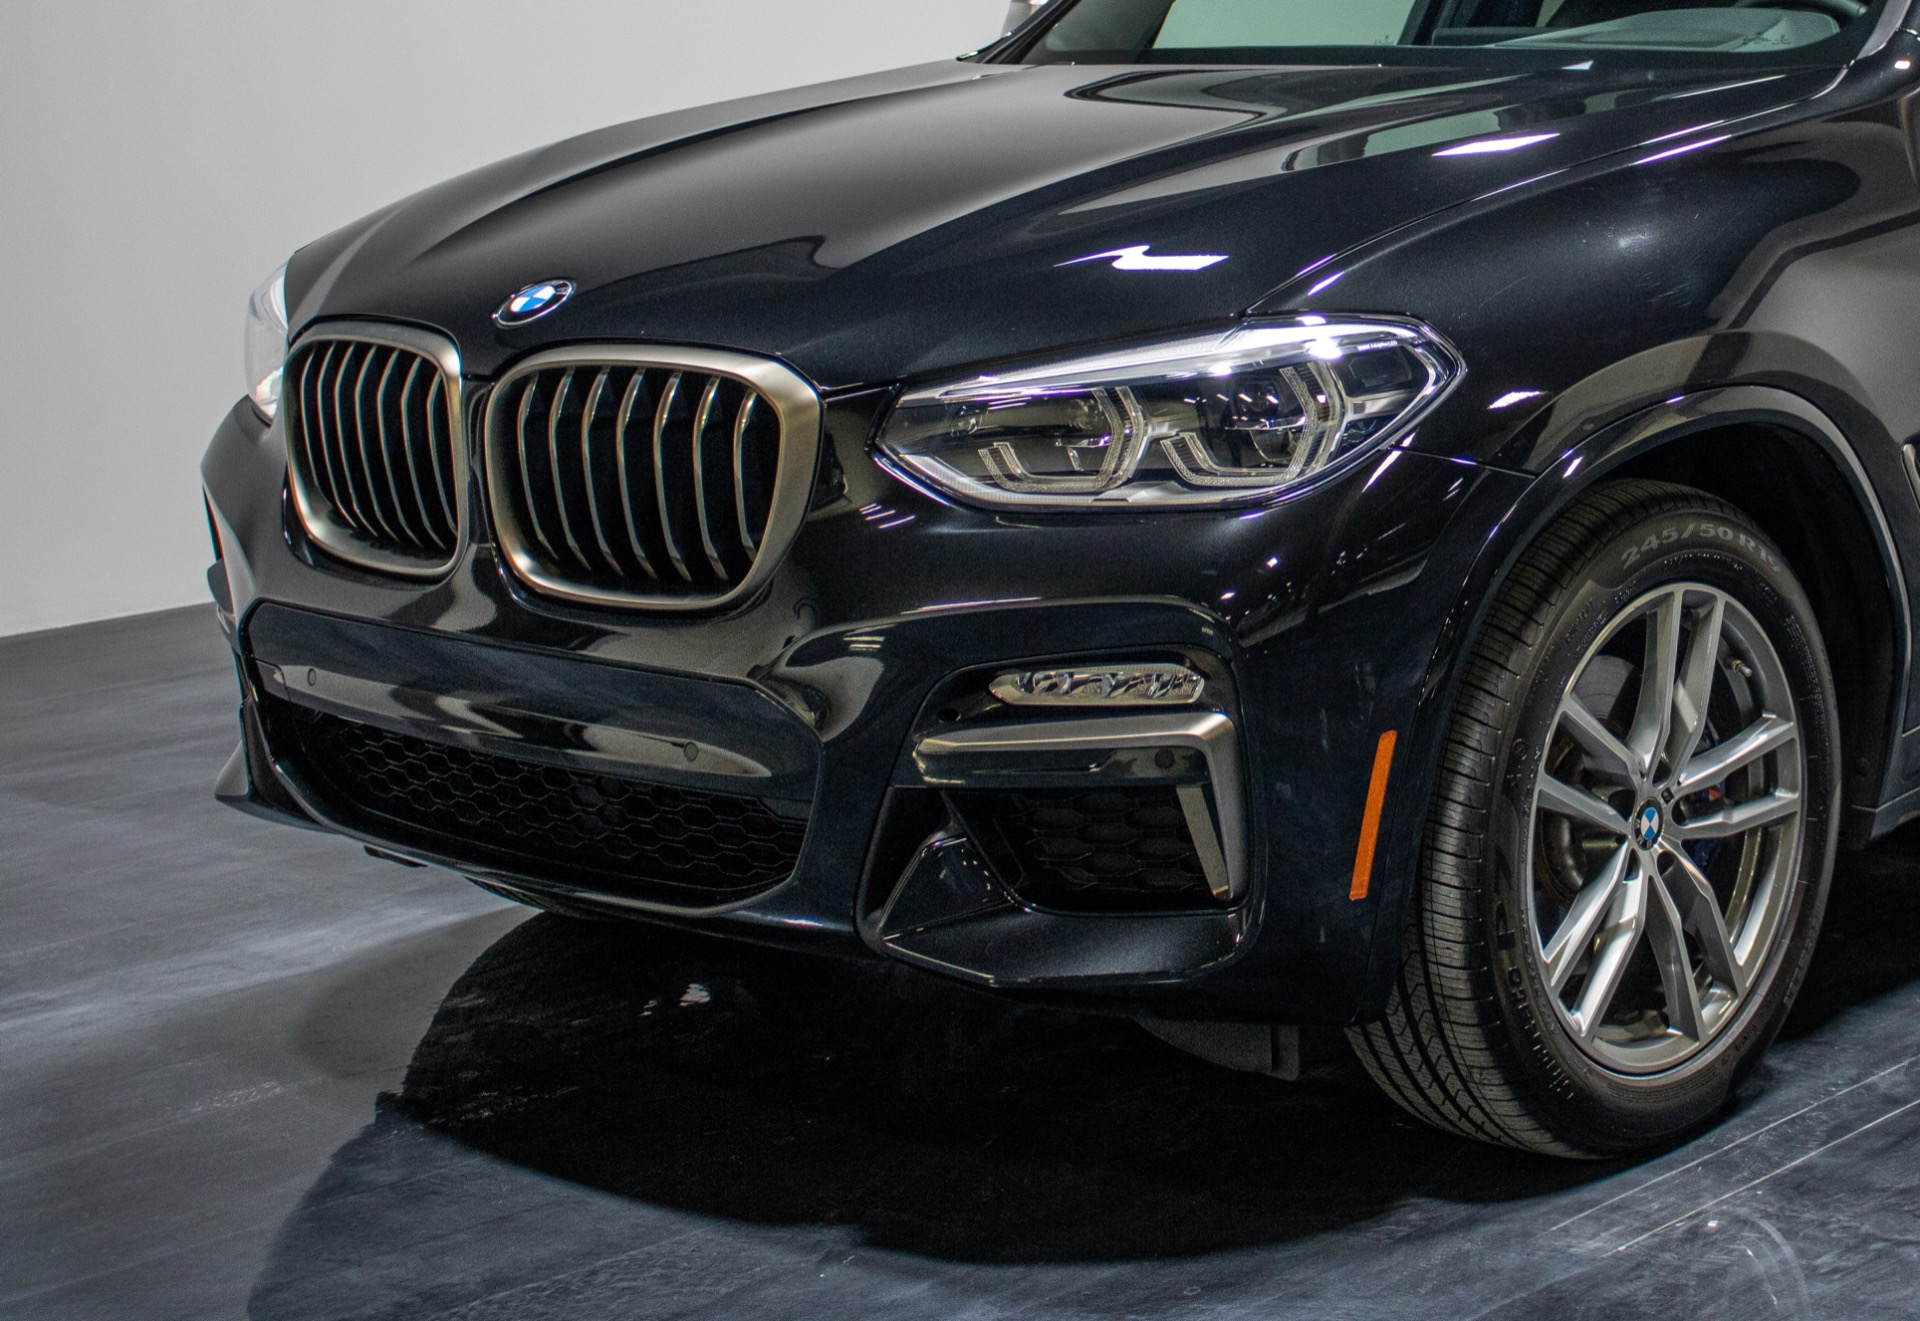 Used 2018 BMW X3 M40i Sport Utility 4D for sale Sold at Perfect Auto Collection in Akron OH 44310 3